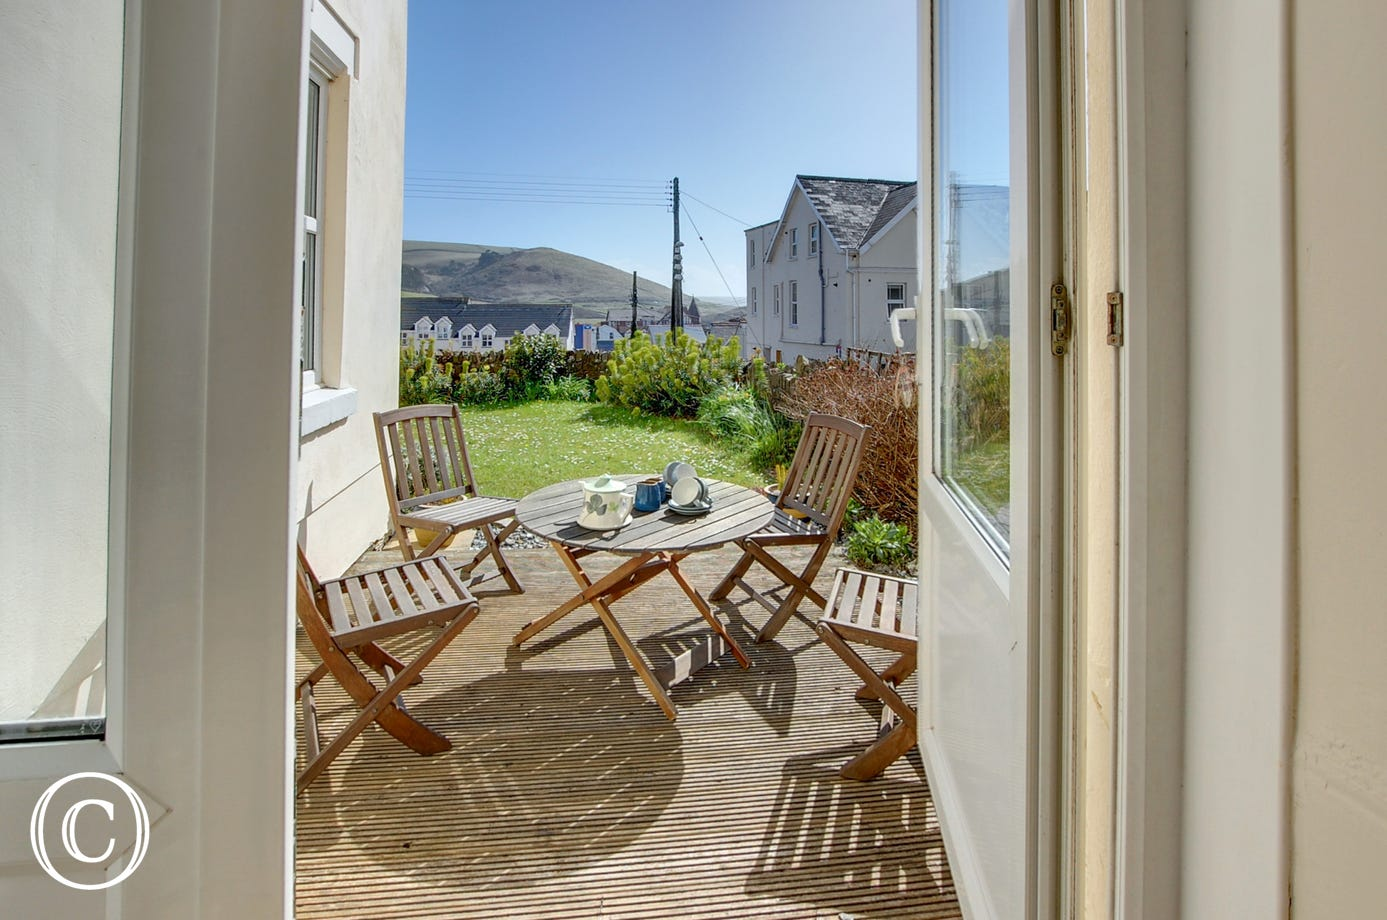 French doors provide access onto a small decked patio and garden which overlooks the village and beach